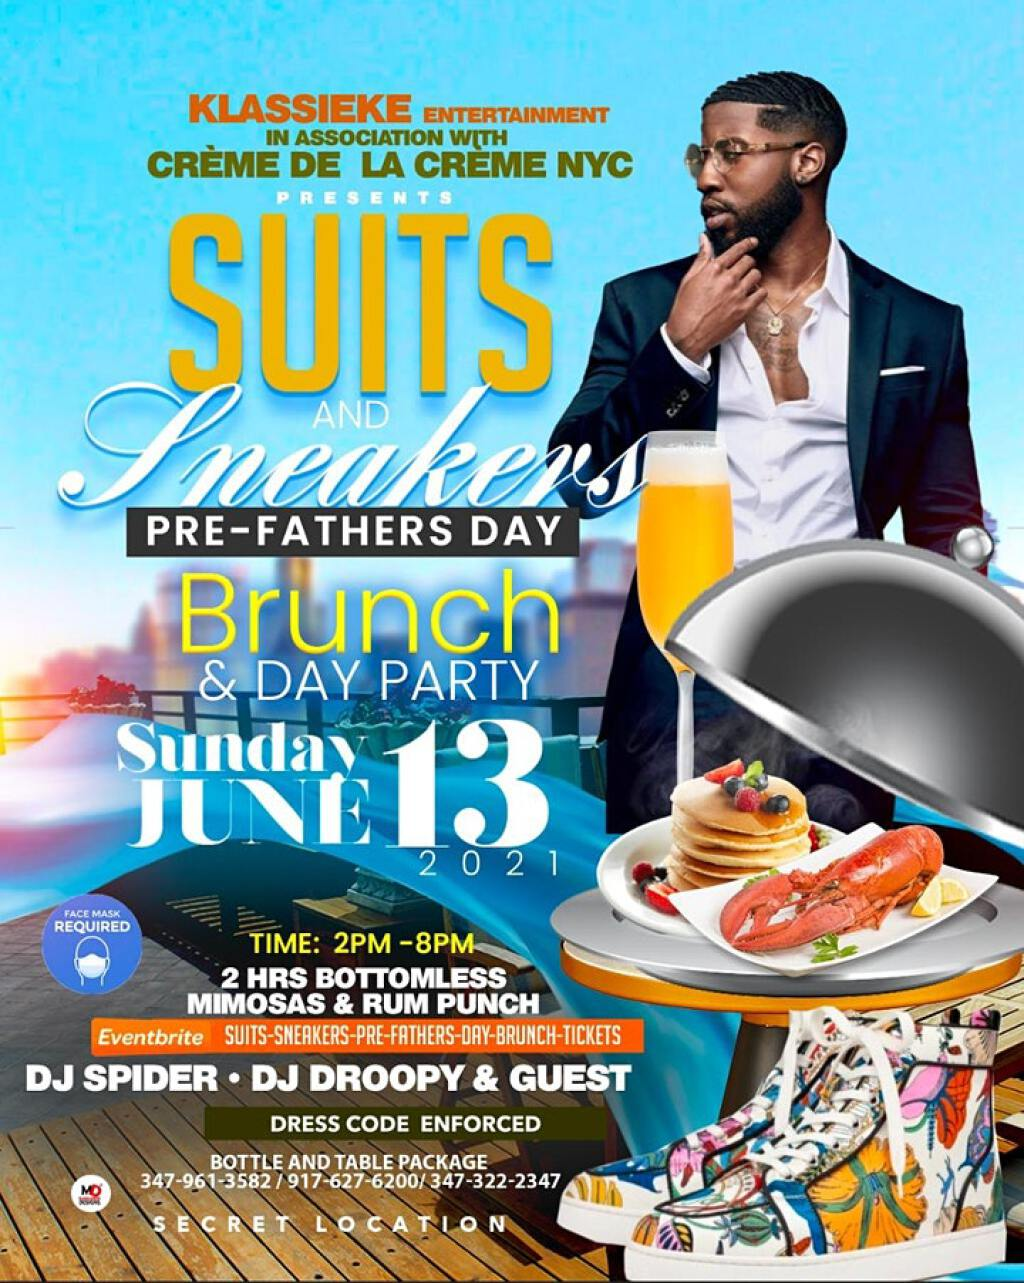 Suits & Sneakers Pre Fathers Day Brunch flyer or graphic.